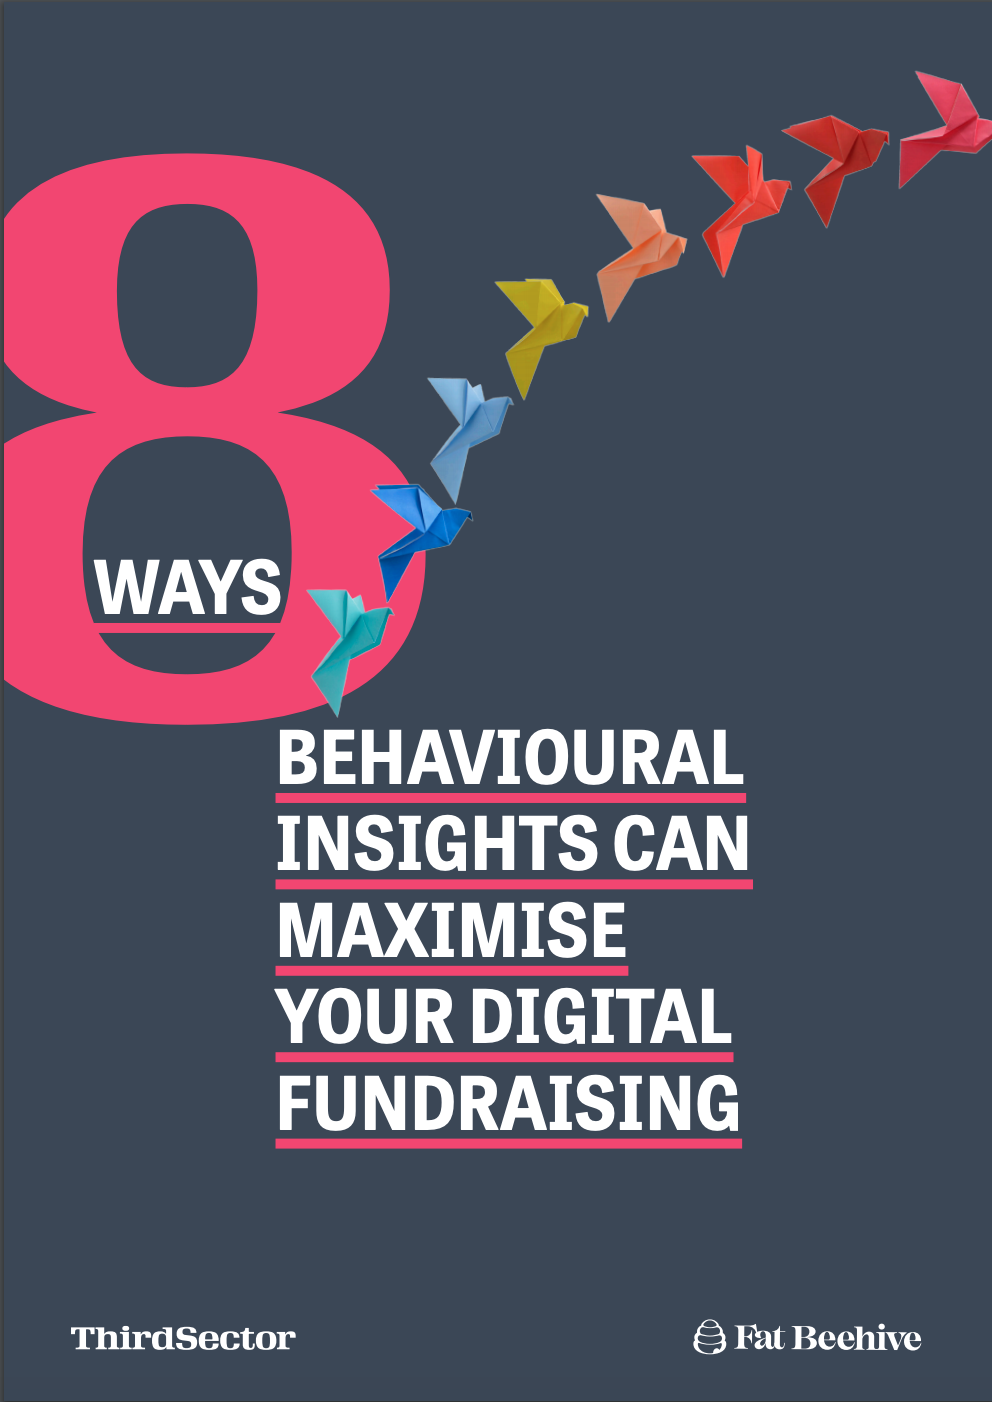 The cover of the '8 ways behavioural science can maximise your digital fundraising' report